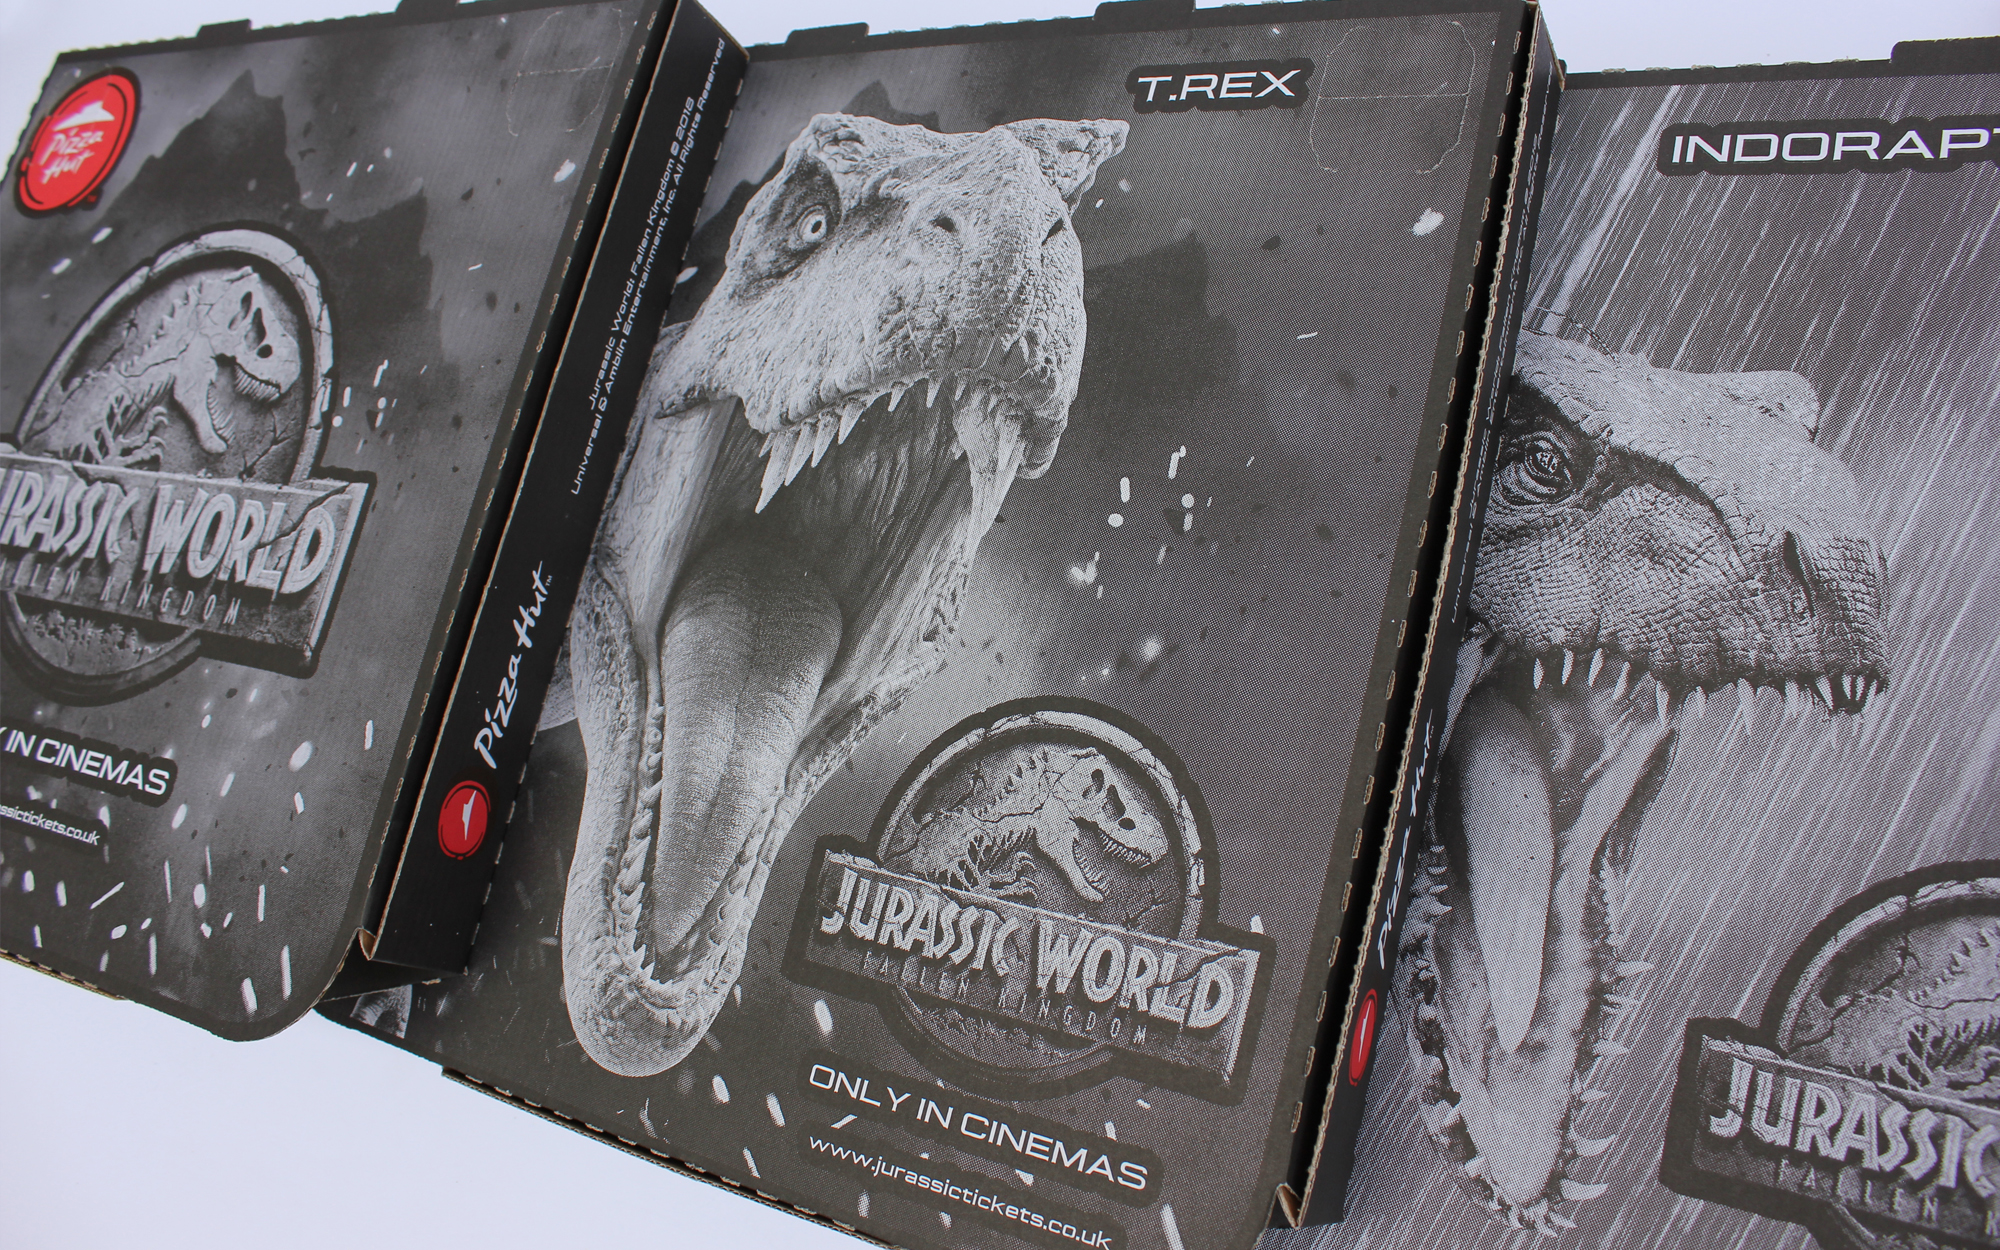 matthew_pomorski_graphic_designer_pizza_box_artwork_pizza_hut_jurassic_world_fallen_kingdom_promotion_collection